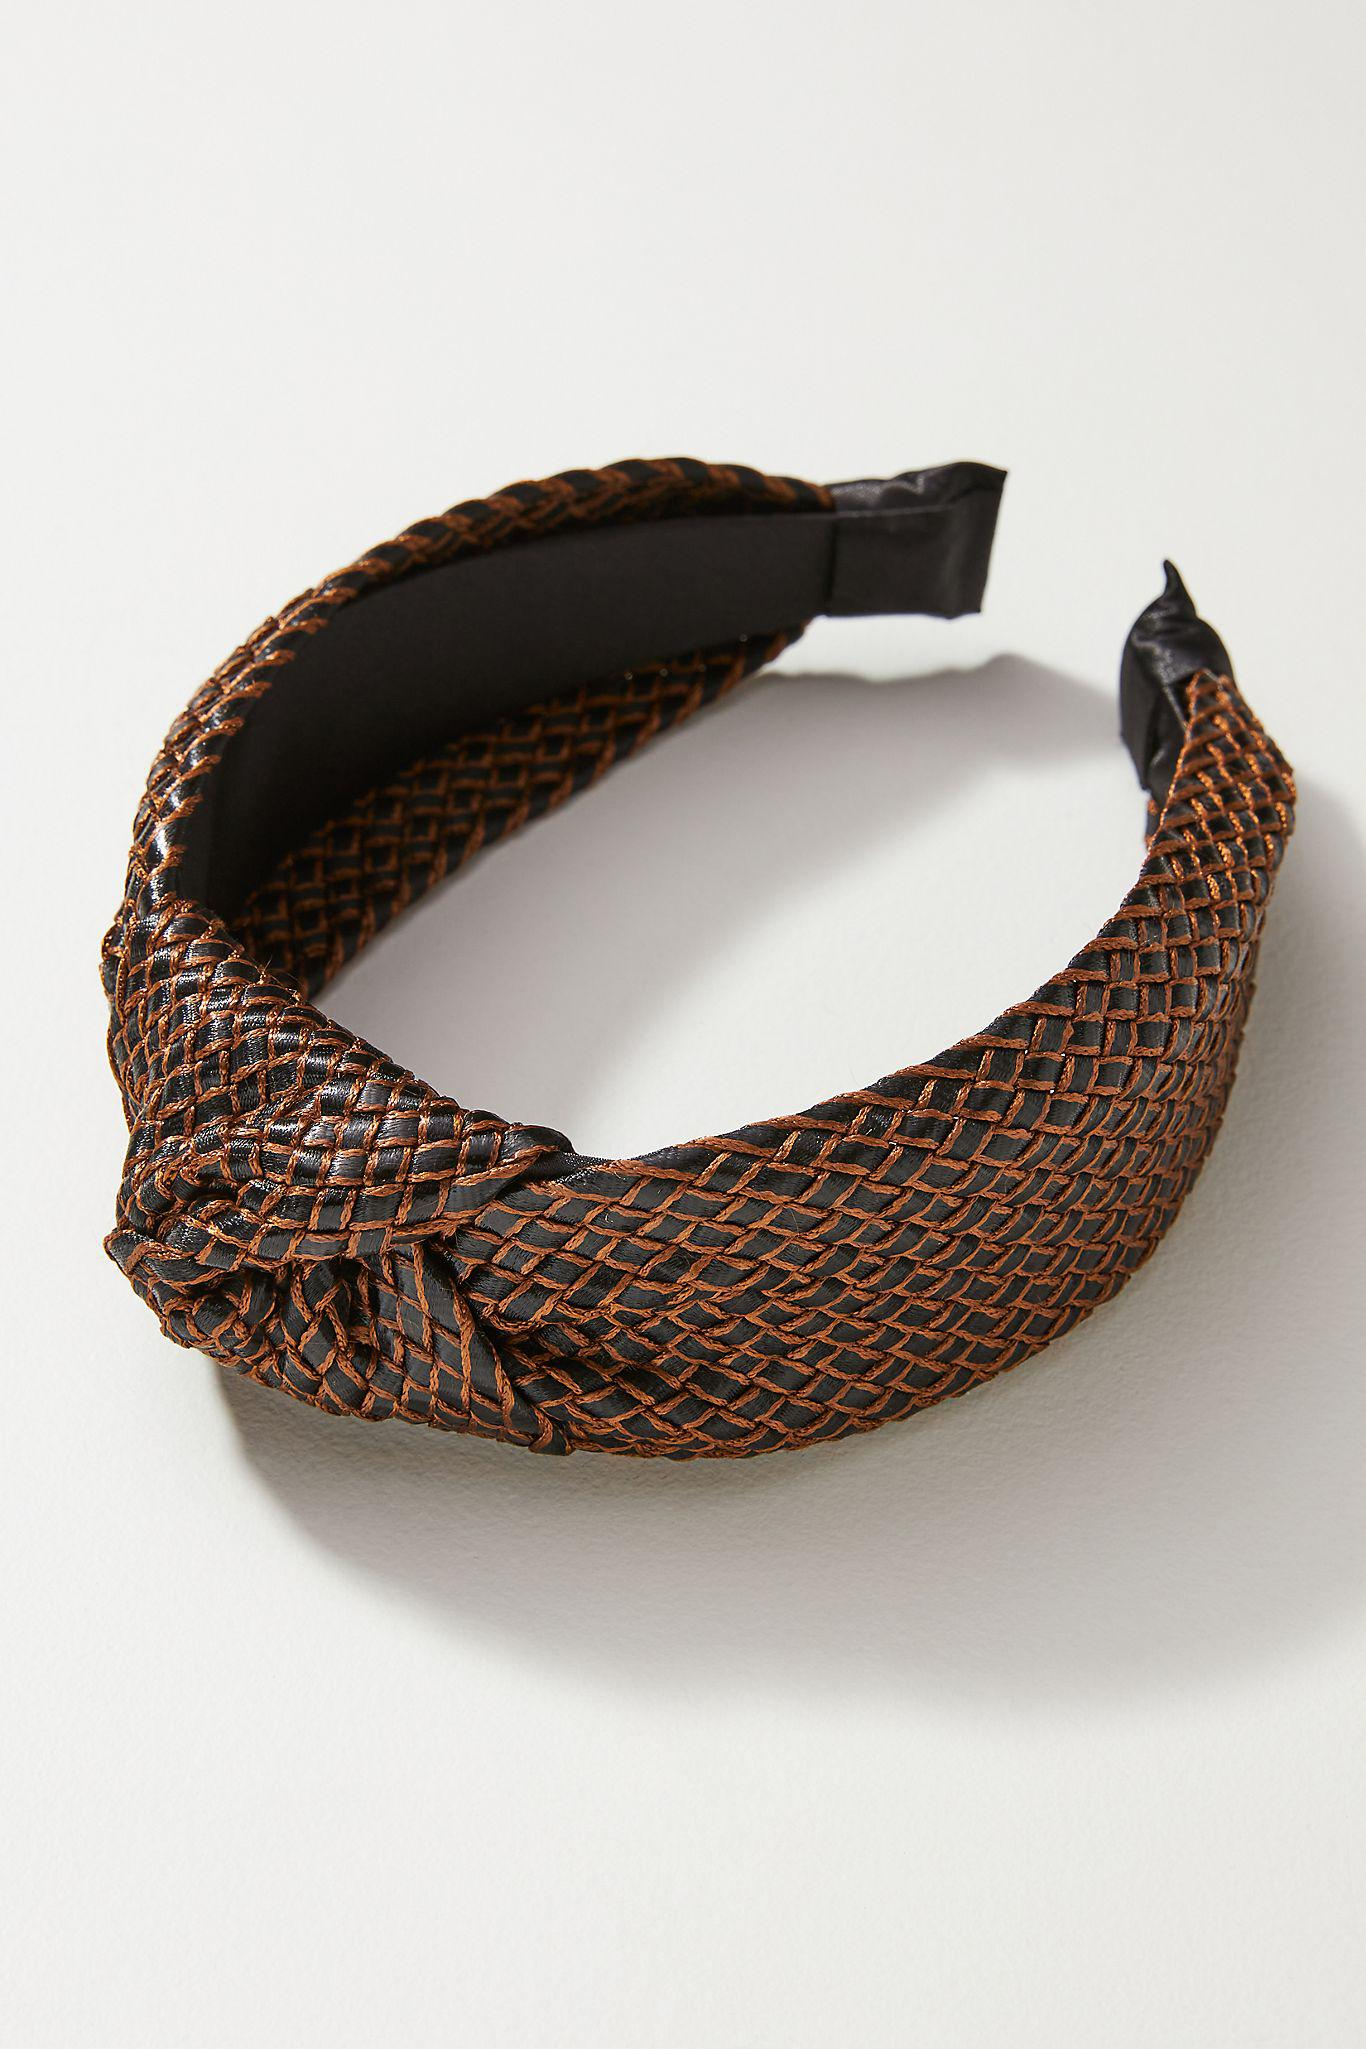 Woven Knotted Headband